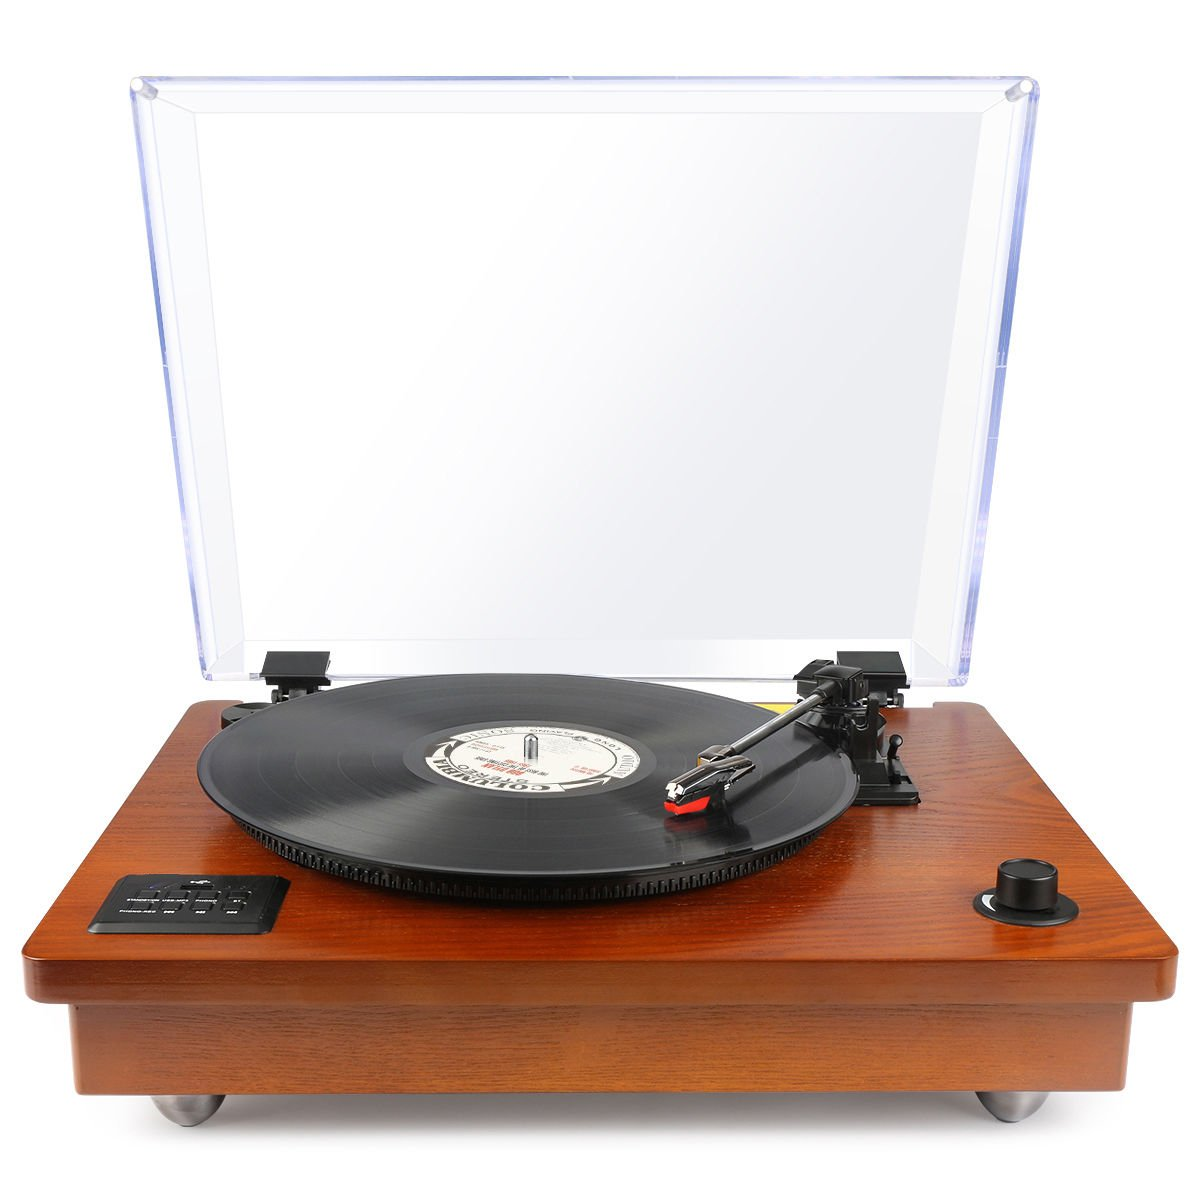 Marketworldcup - Bluetooth USB Turntable Vintage Record Player Vinyl-to MP3 Nature Wood, Speed Settings 78 RPM, 33.3RPM, 45RPM Bluetooth Support Wireless Sound, Brown by Marketworldcup